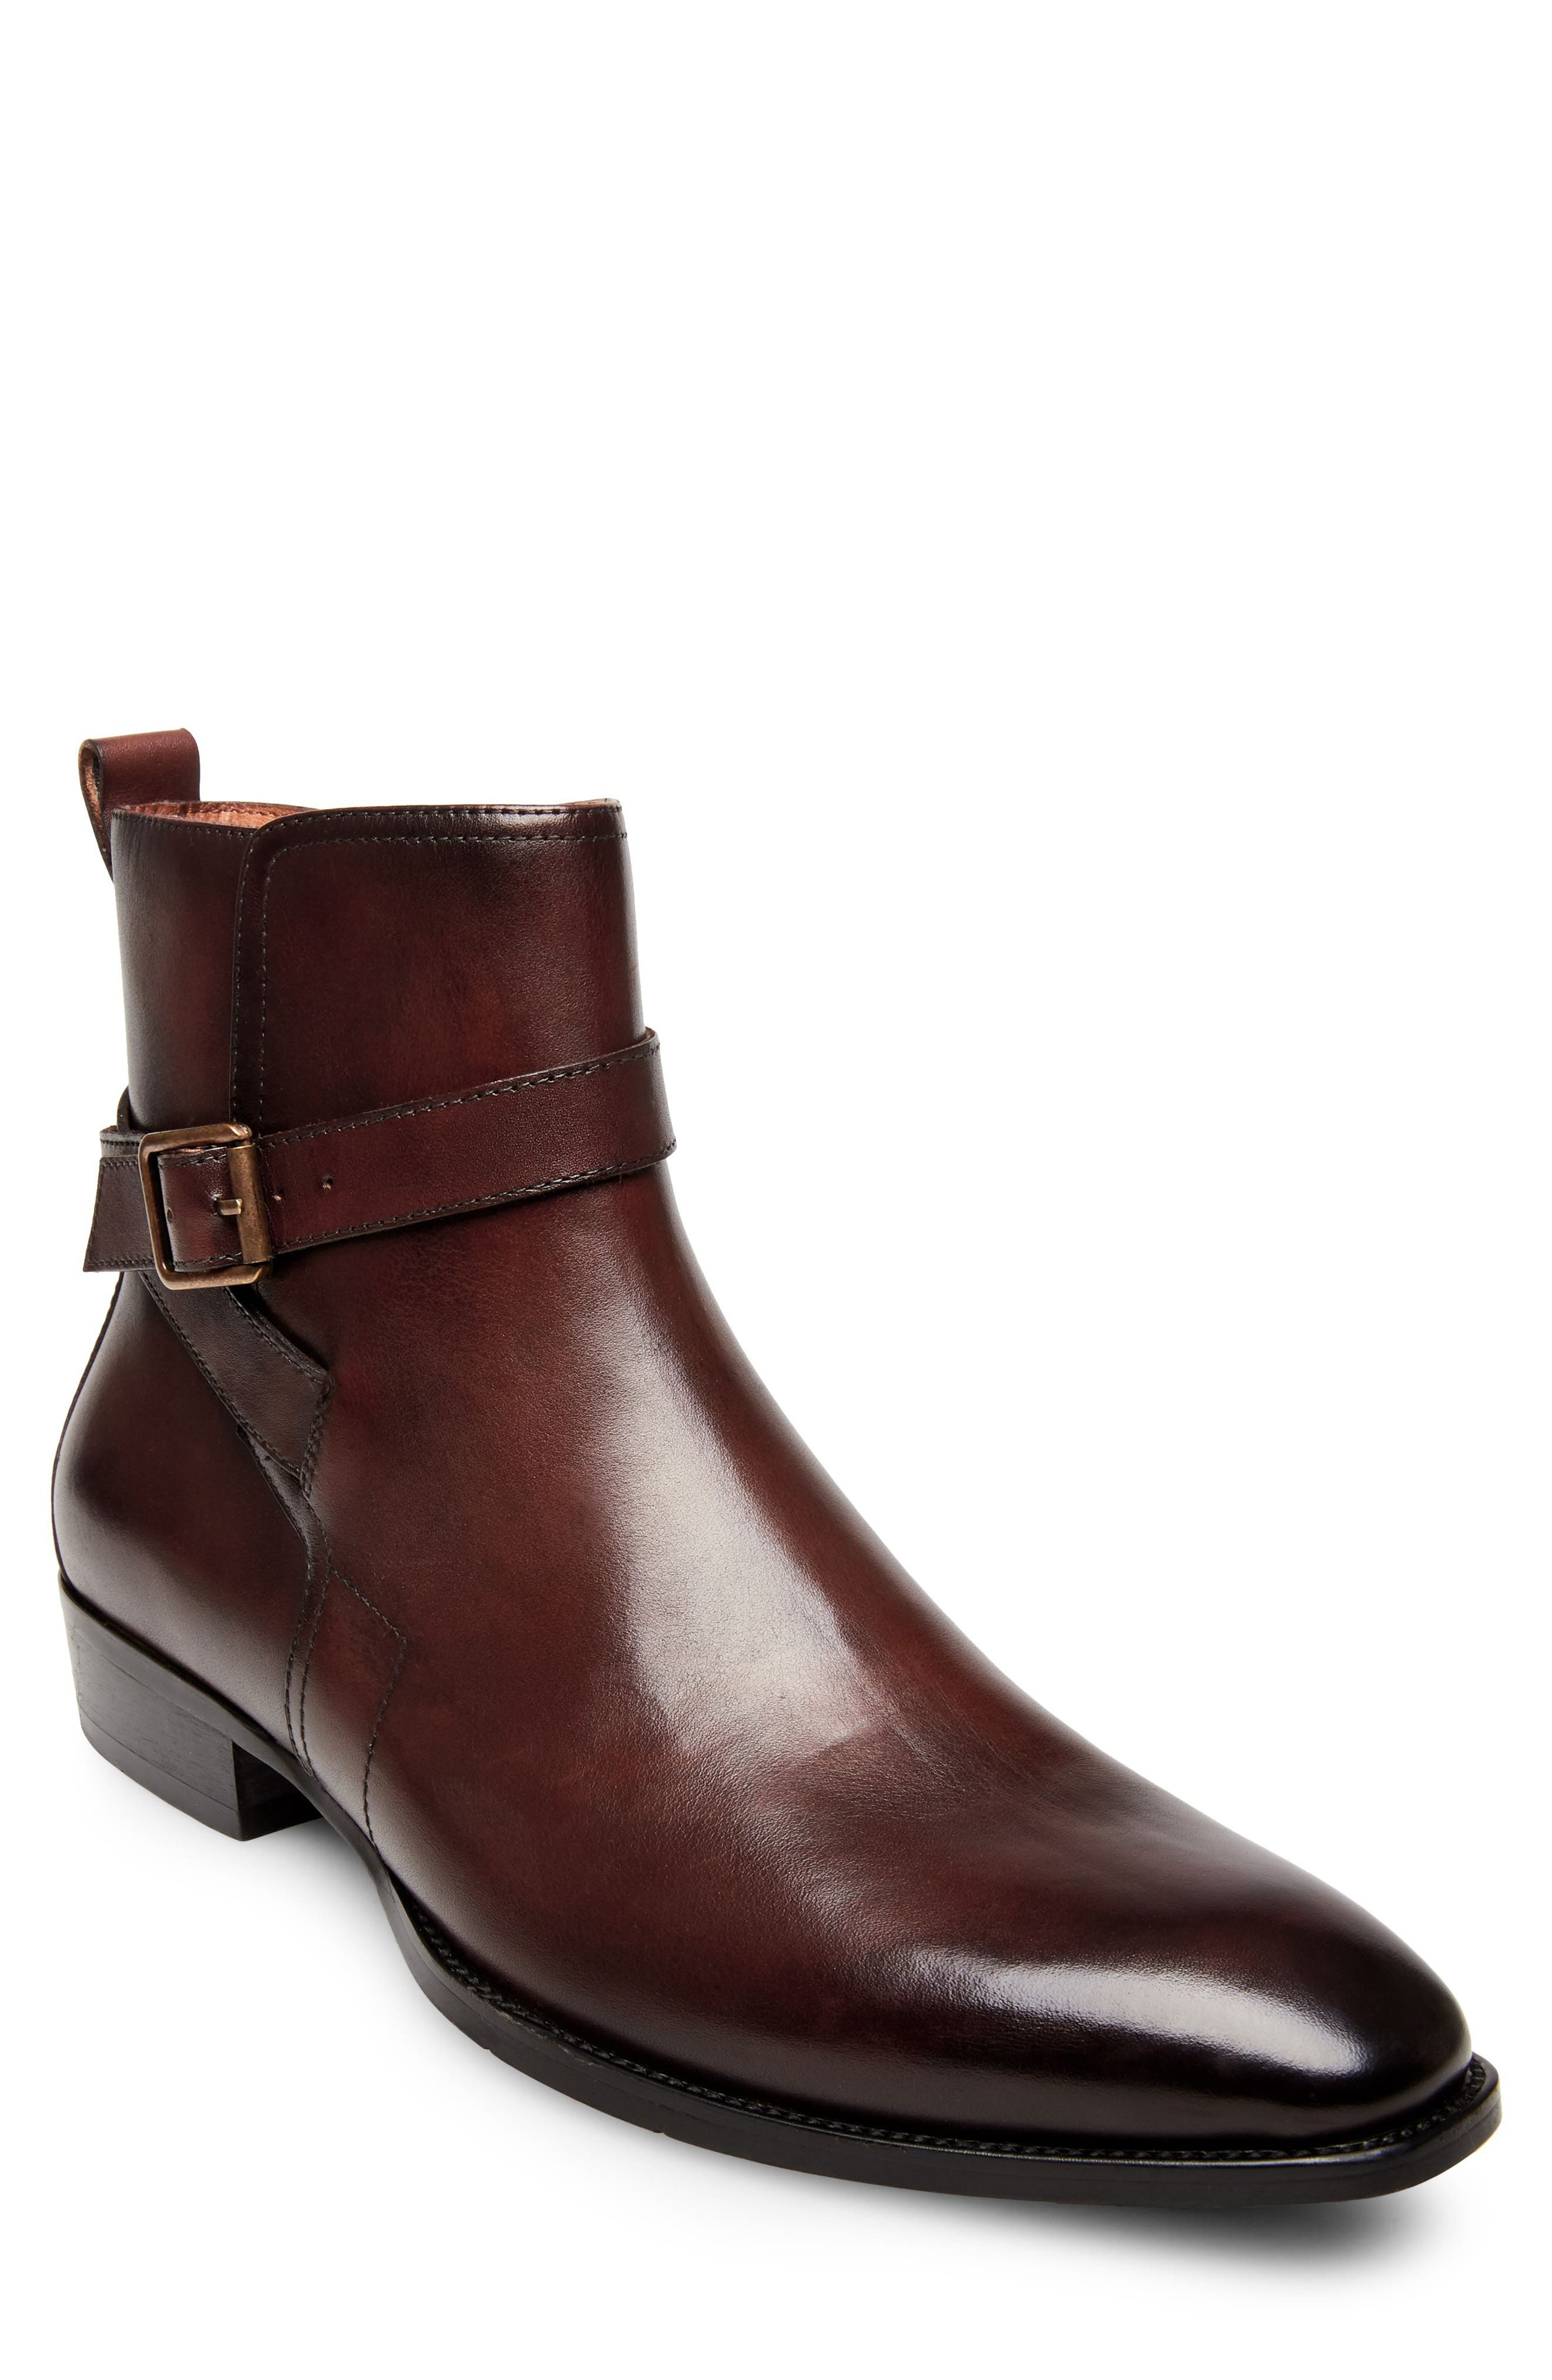 Sacha Buckle Strap Boot,                             Main thumbnail 1, color,                             Brown Leather